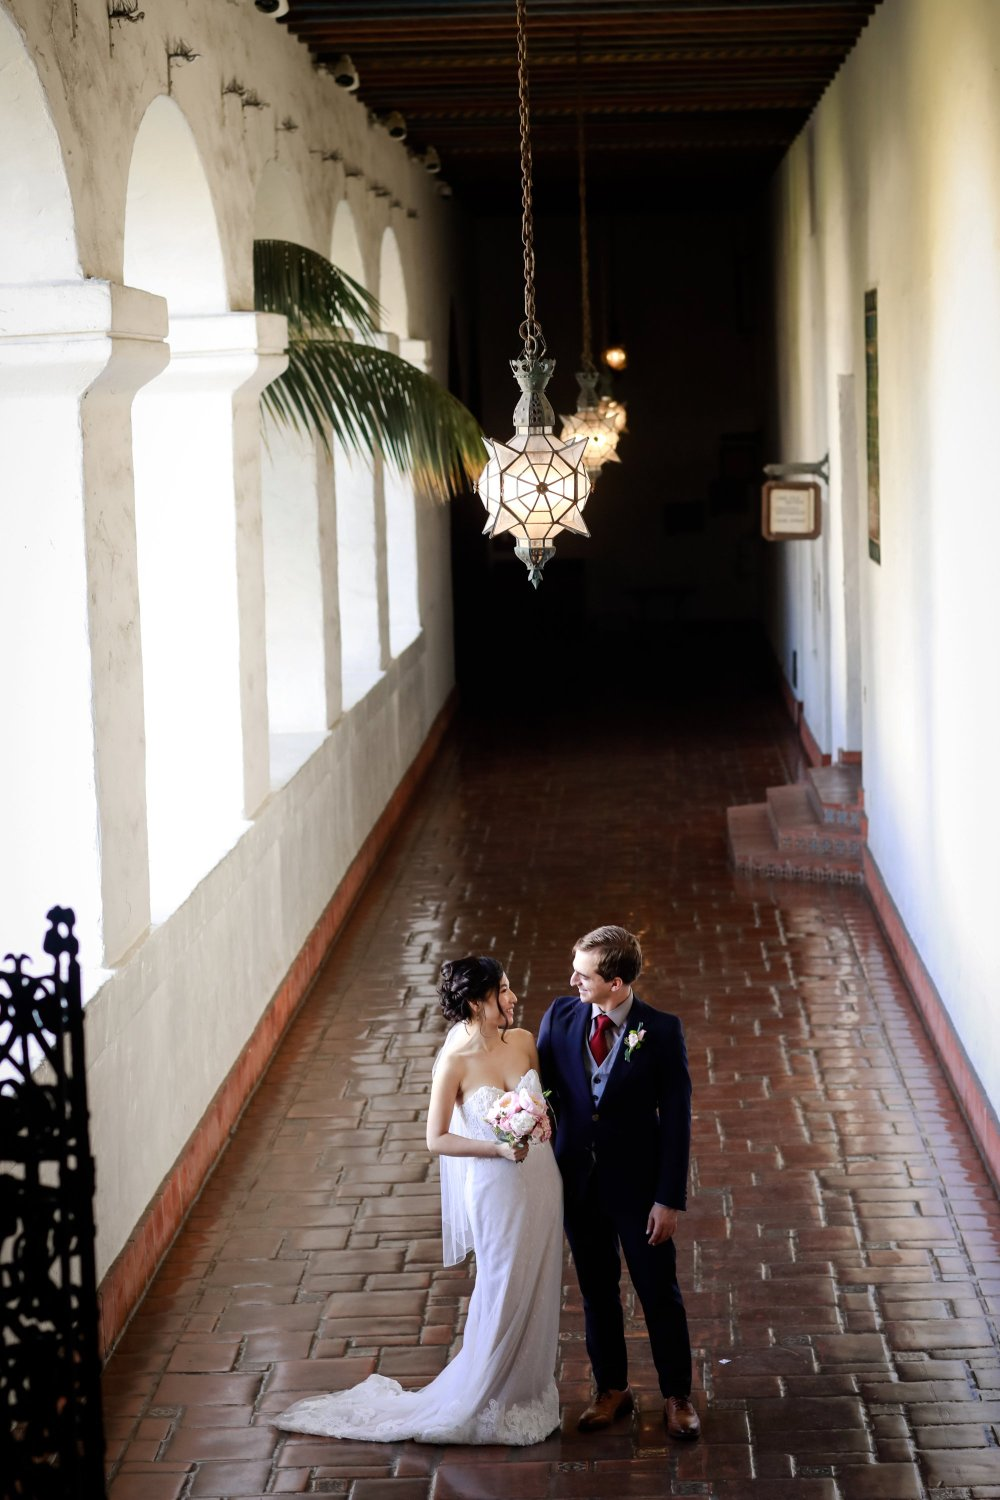 maria_gabriel_santa_barbara_courthouse_wedding_elopement_by_cassia_karin_photography-15.jpg